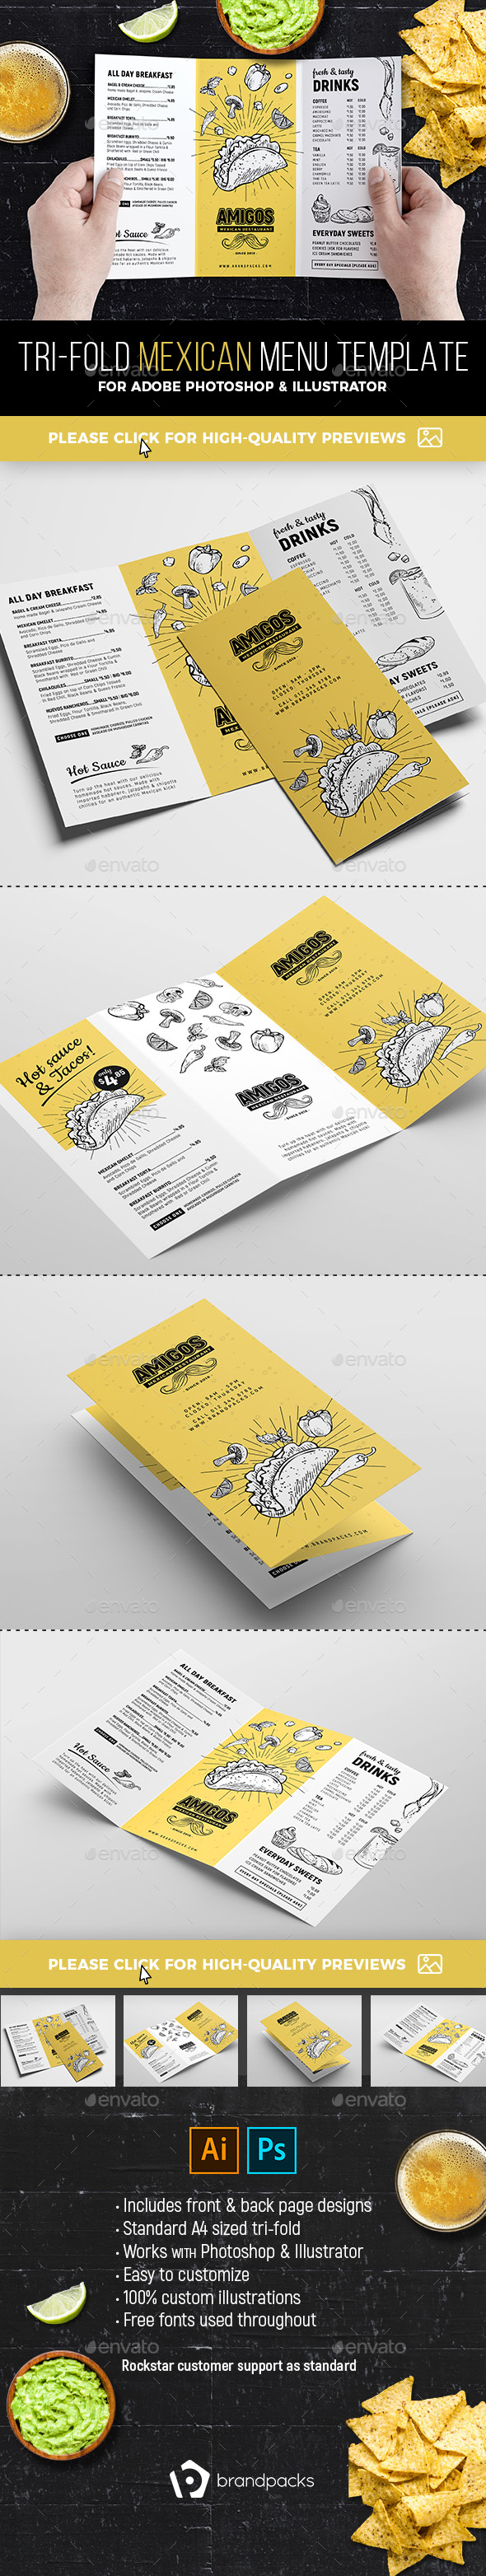 Tri-Fold Mexican Menu Template - Food Menus Print Templates